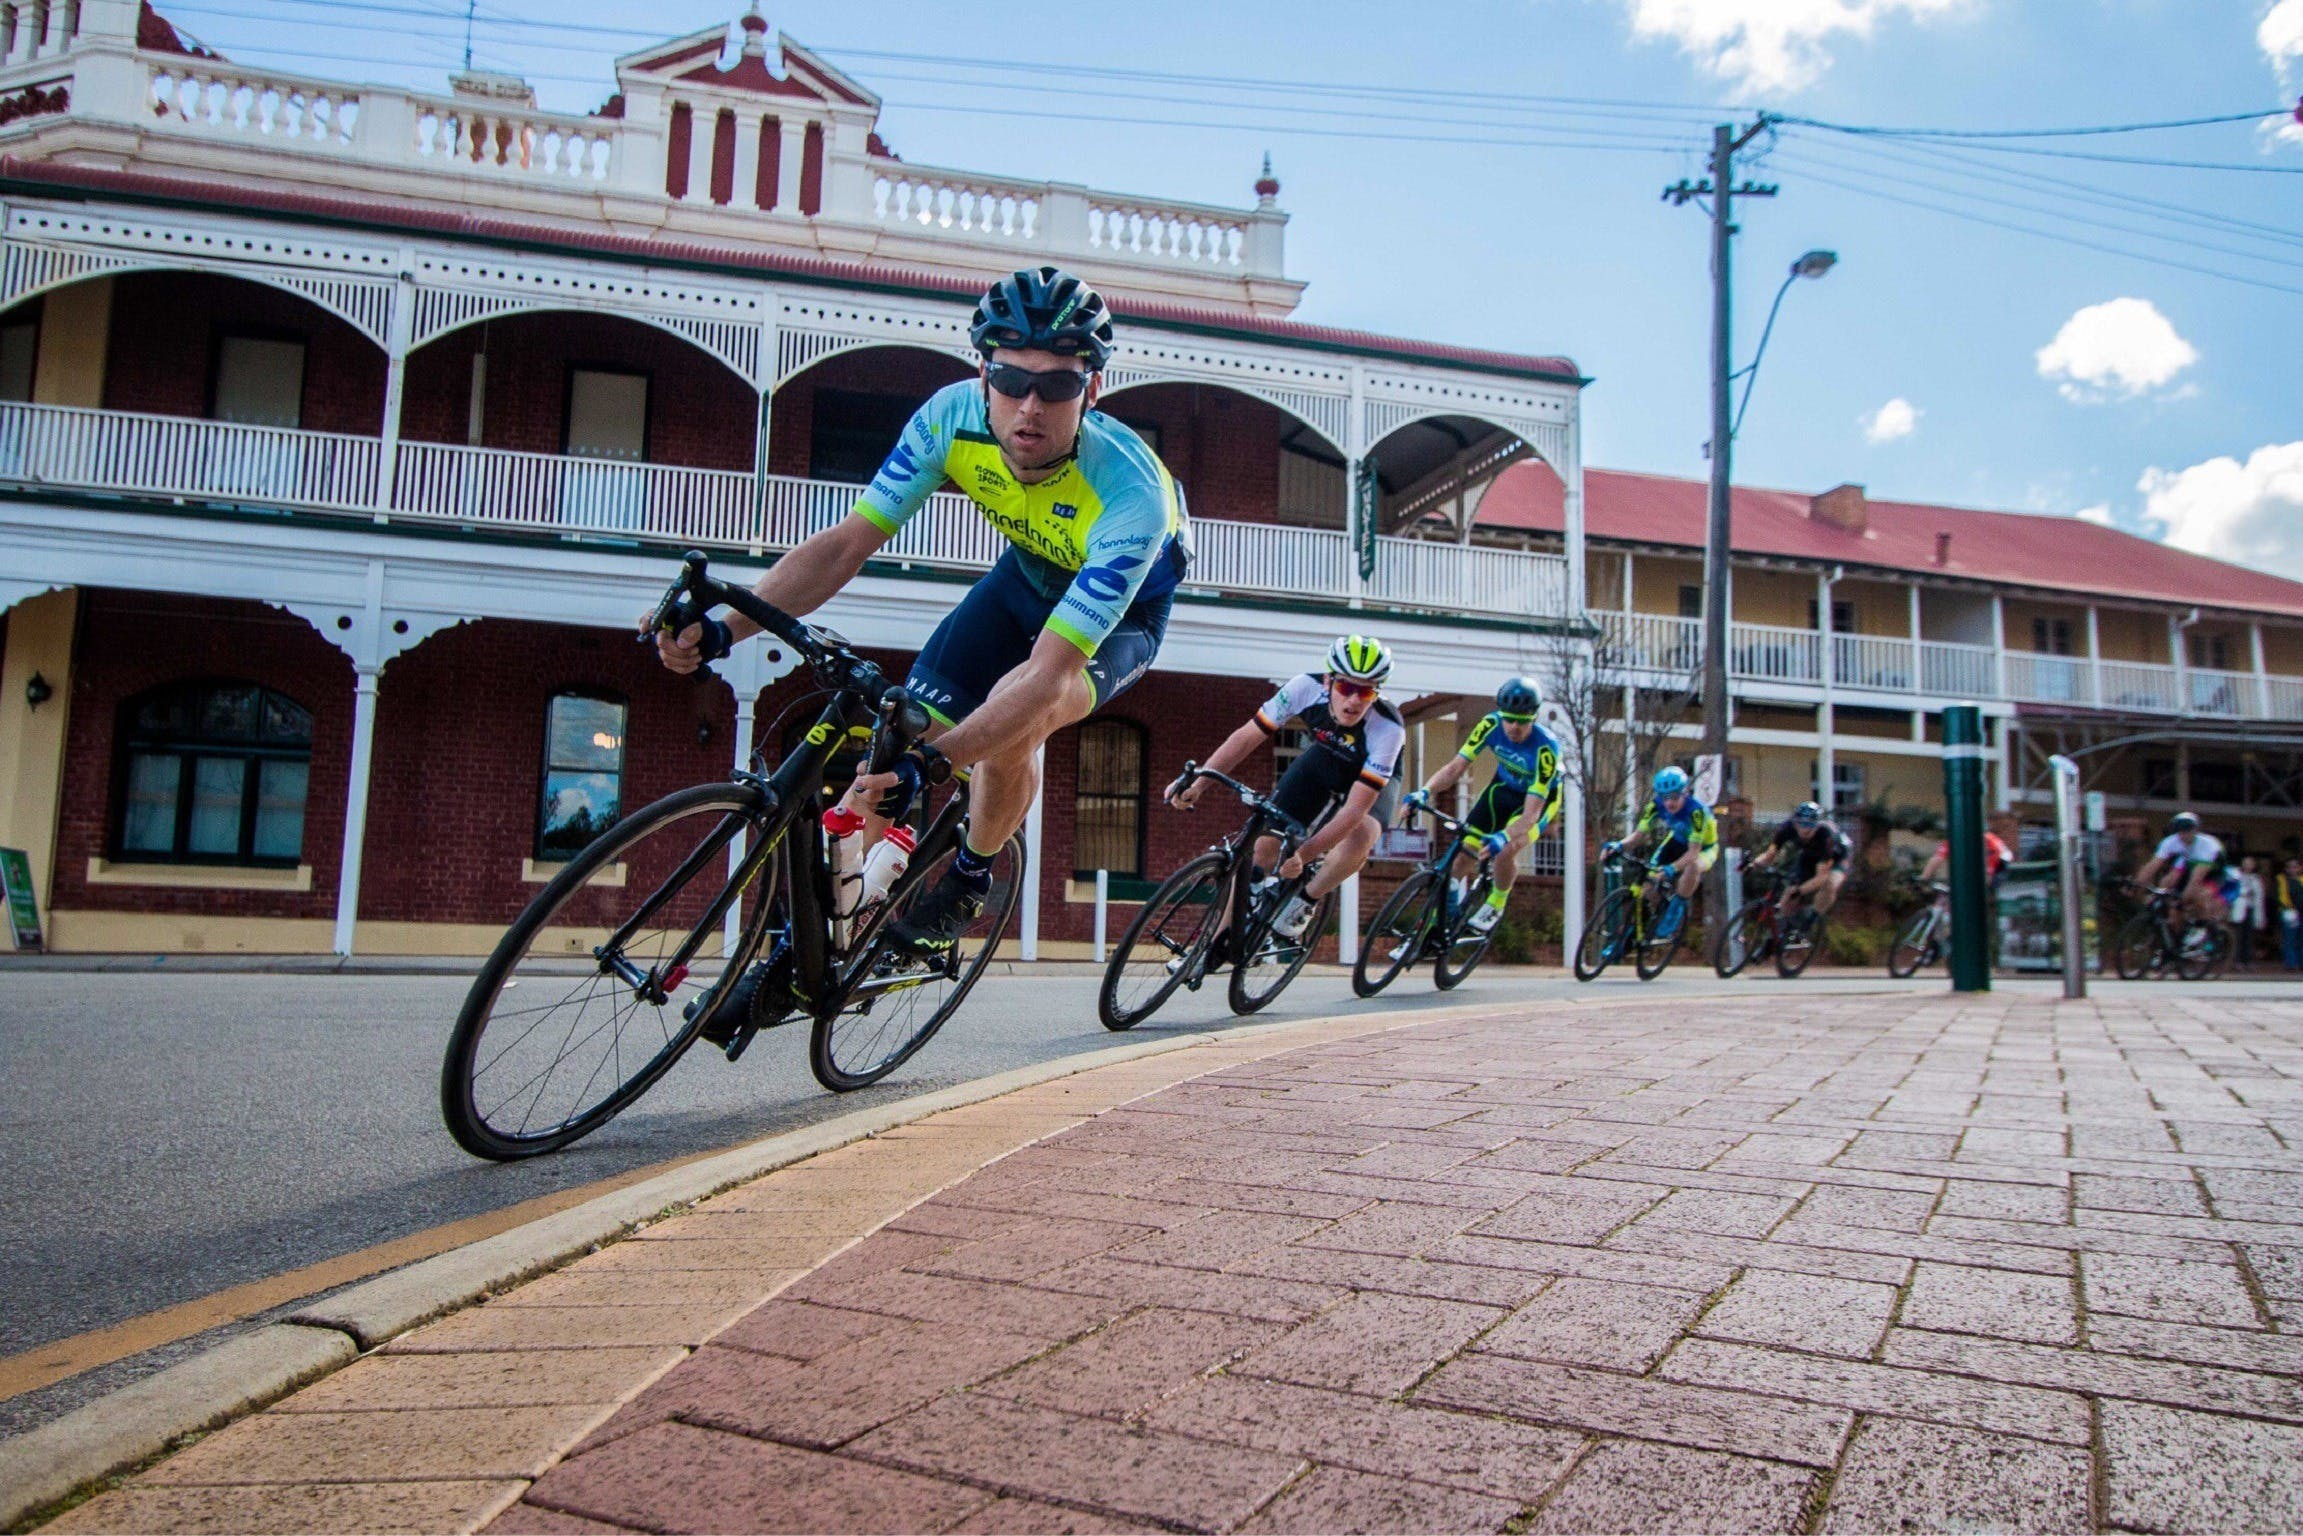 The West Side Story - Avon River Cycle Trail - Carnarvon Accommodation